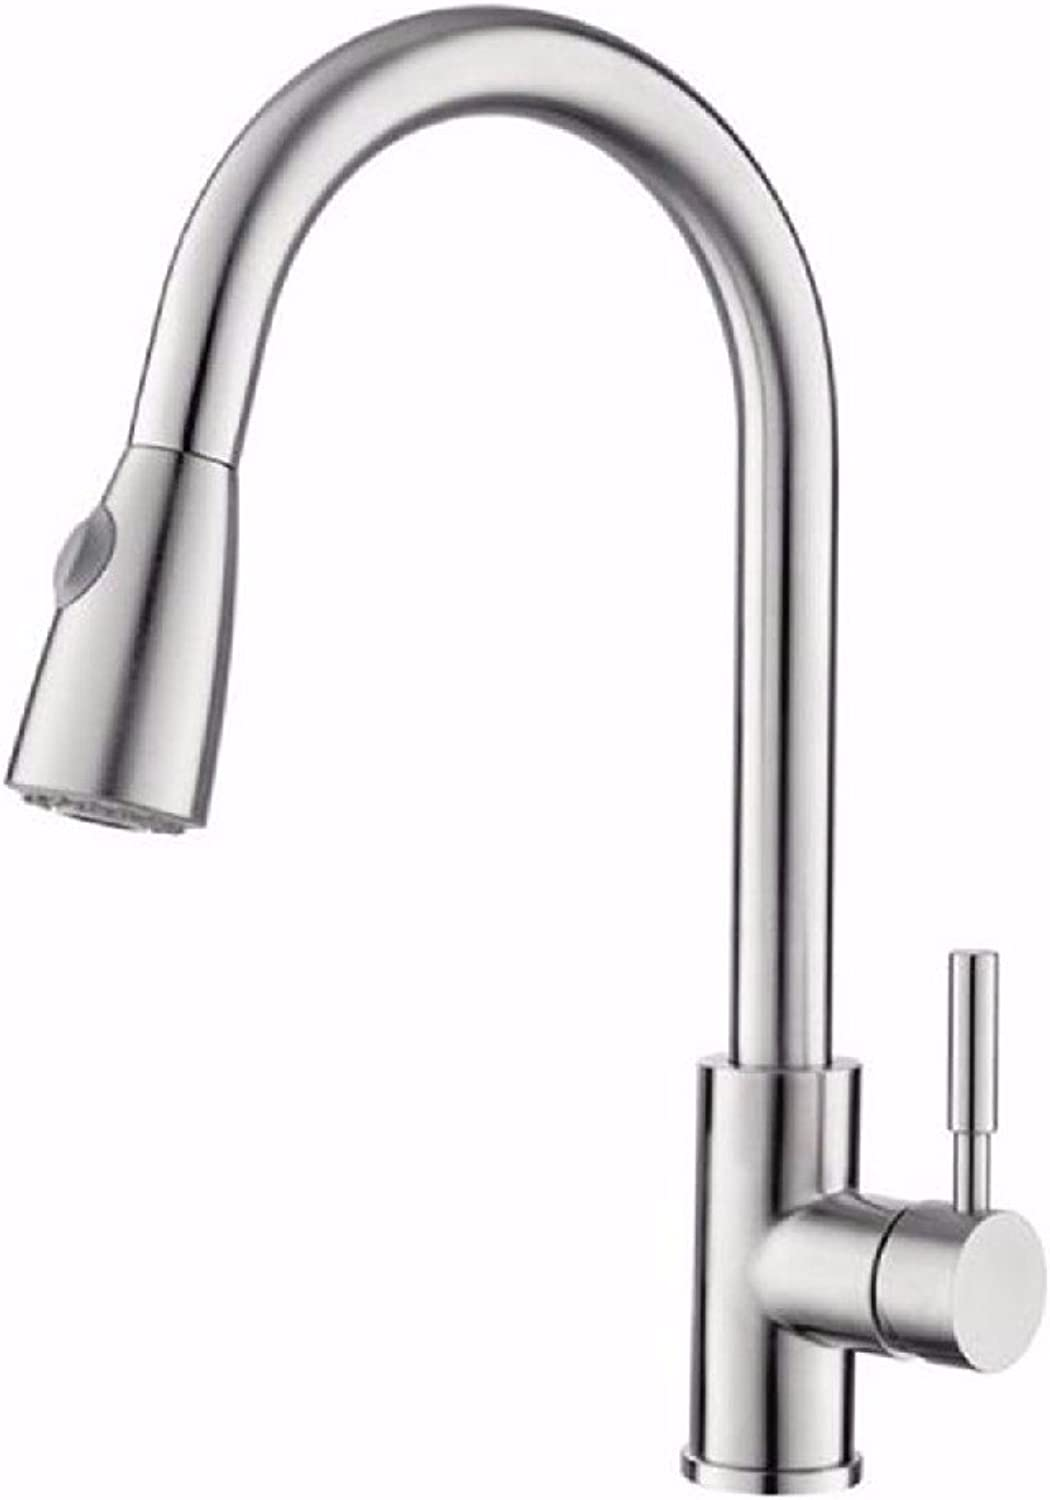 Stainless Steel Kitchen Faucet Pull-Type hot and Cold redating Lead-Free Brushed Sink Faucet A